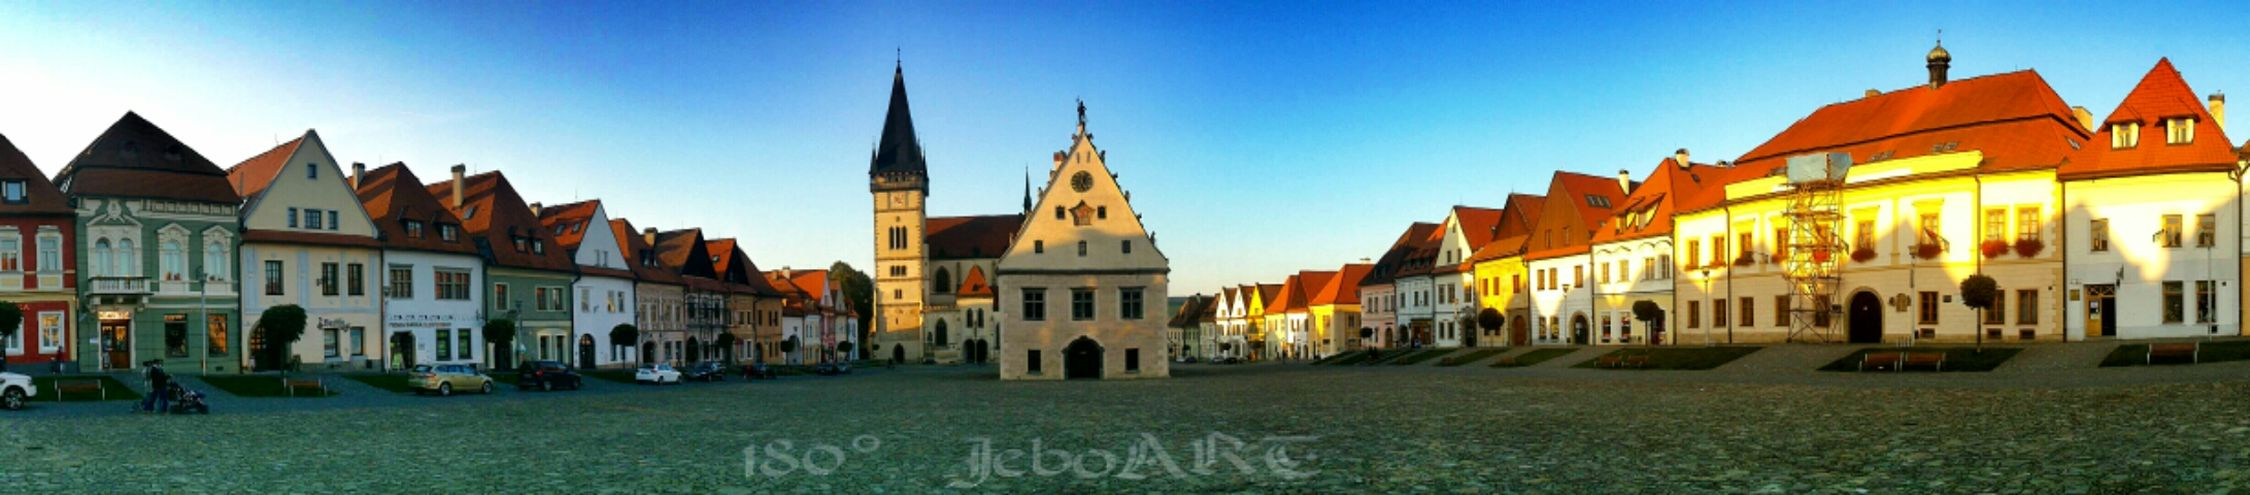 Church Historical Building Square Panorama Buildings My Town 180° Bardejov